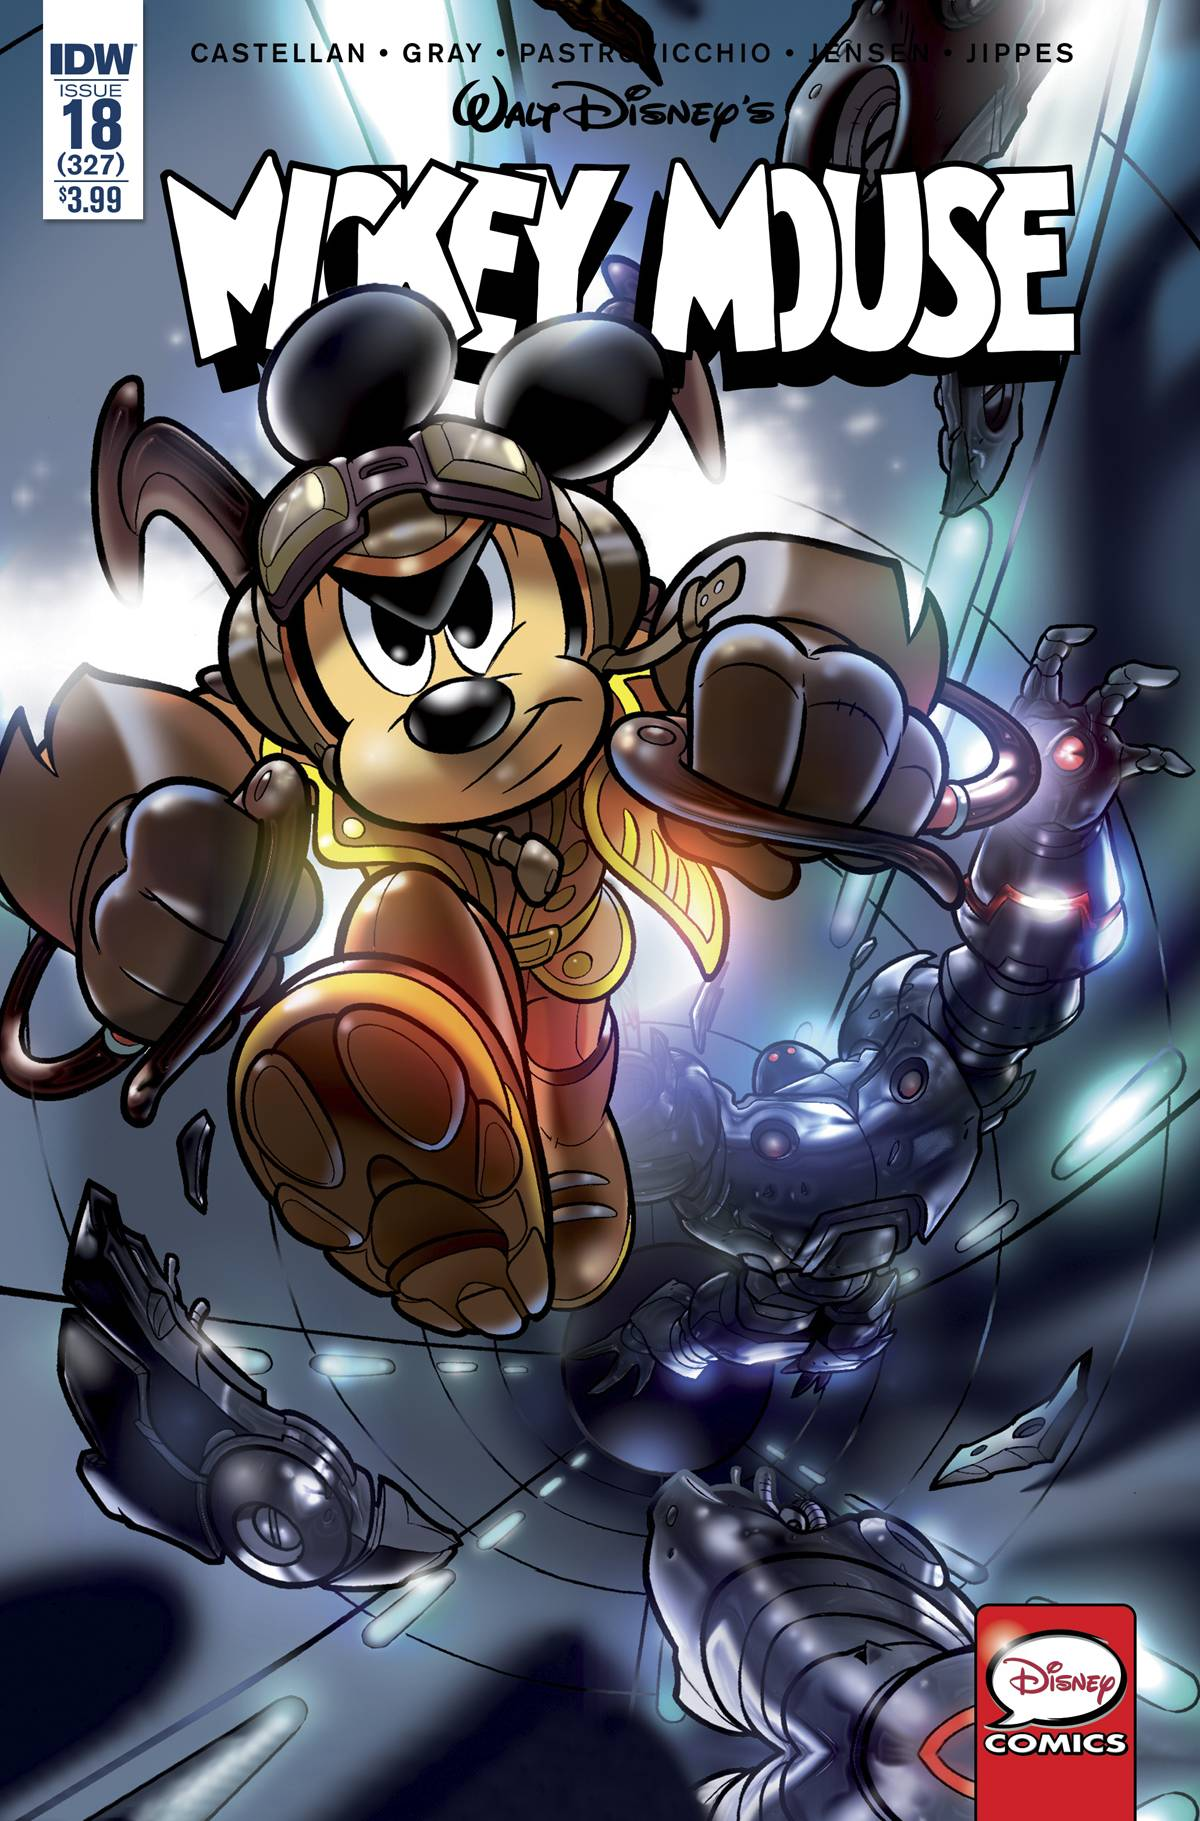 MICKEY MOUSE #18